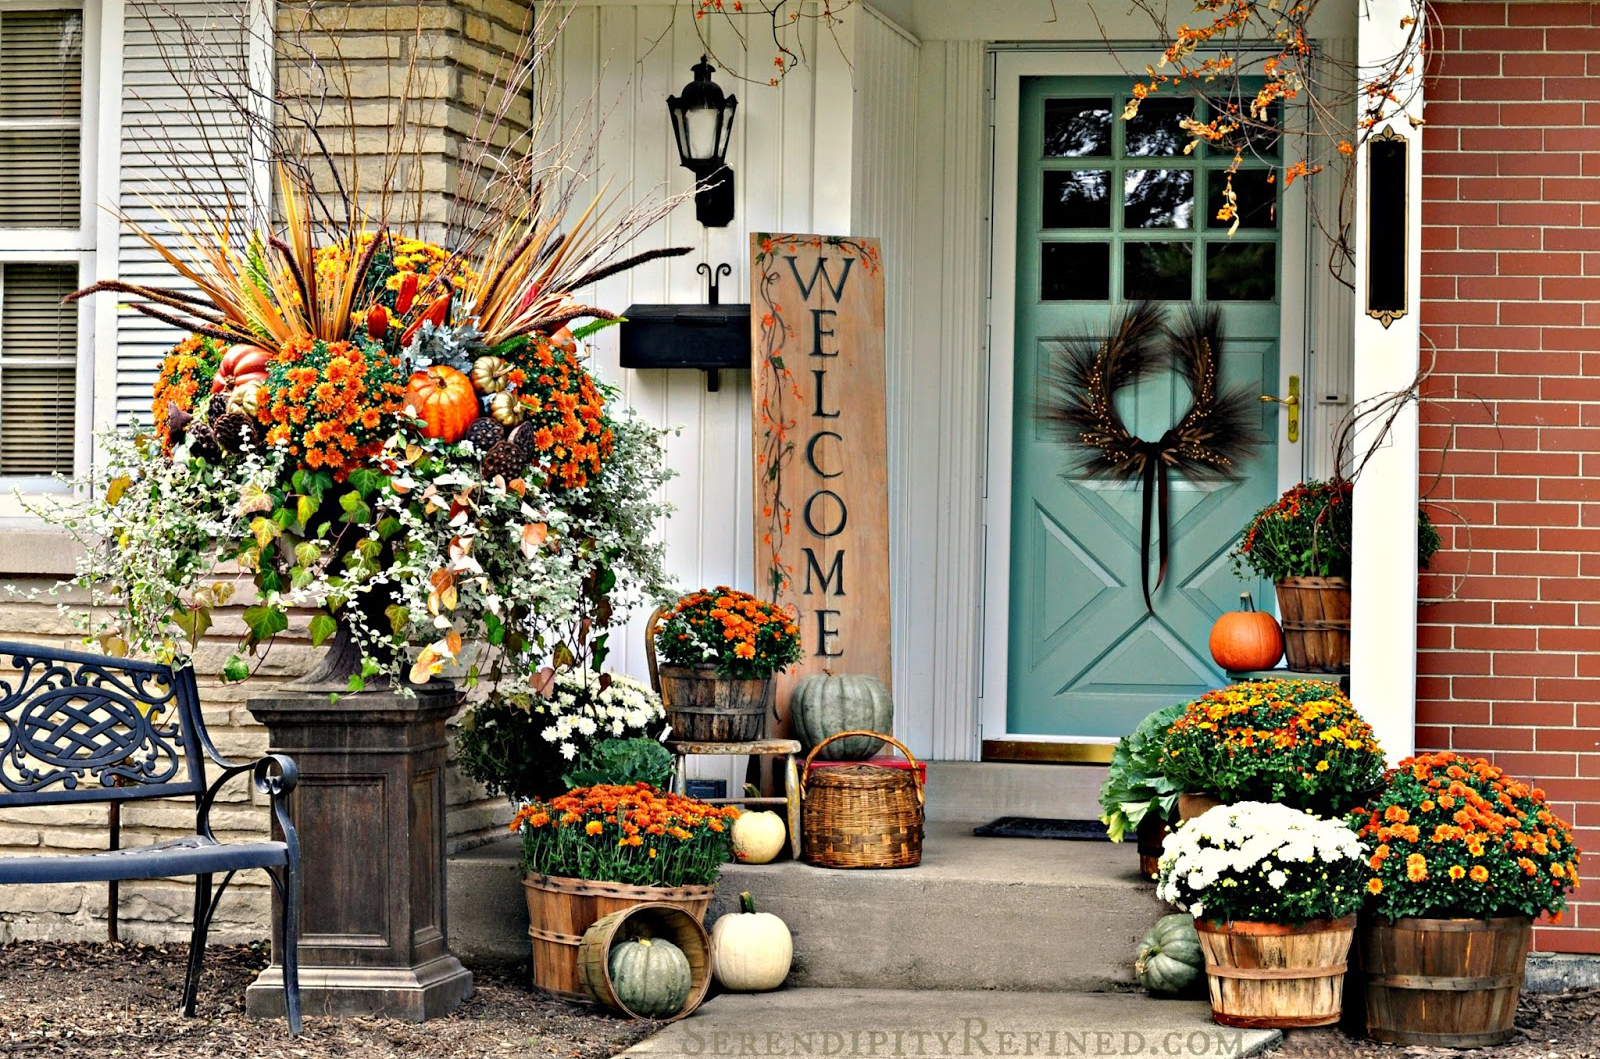 37 fall porch decorating ideas ways to decorate your porch for fall - Fall Harvest Decor